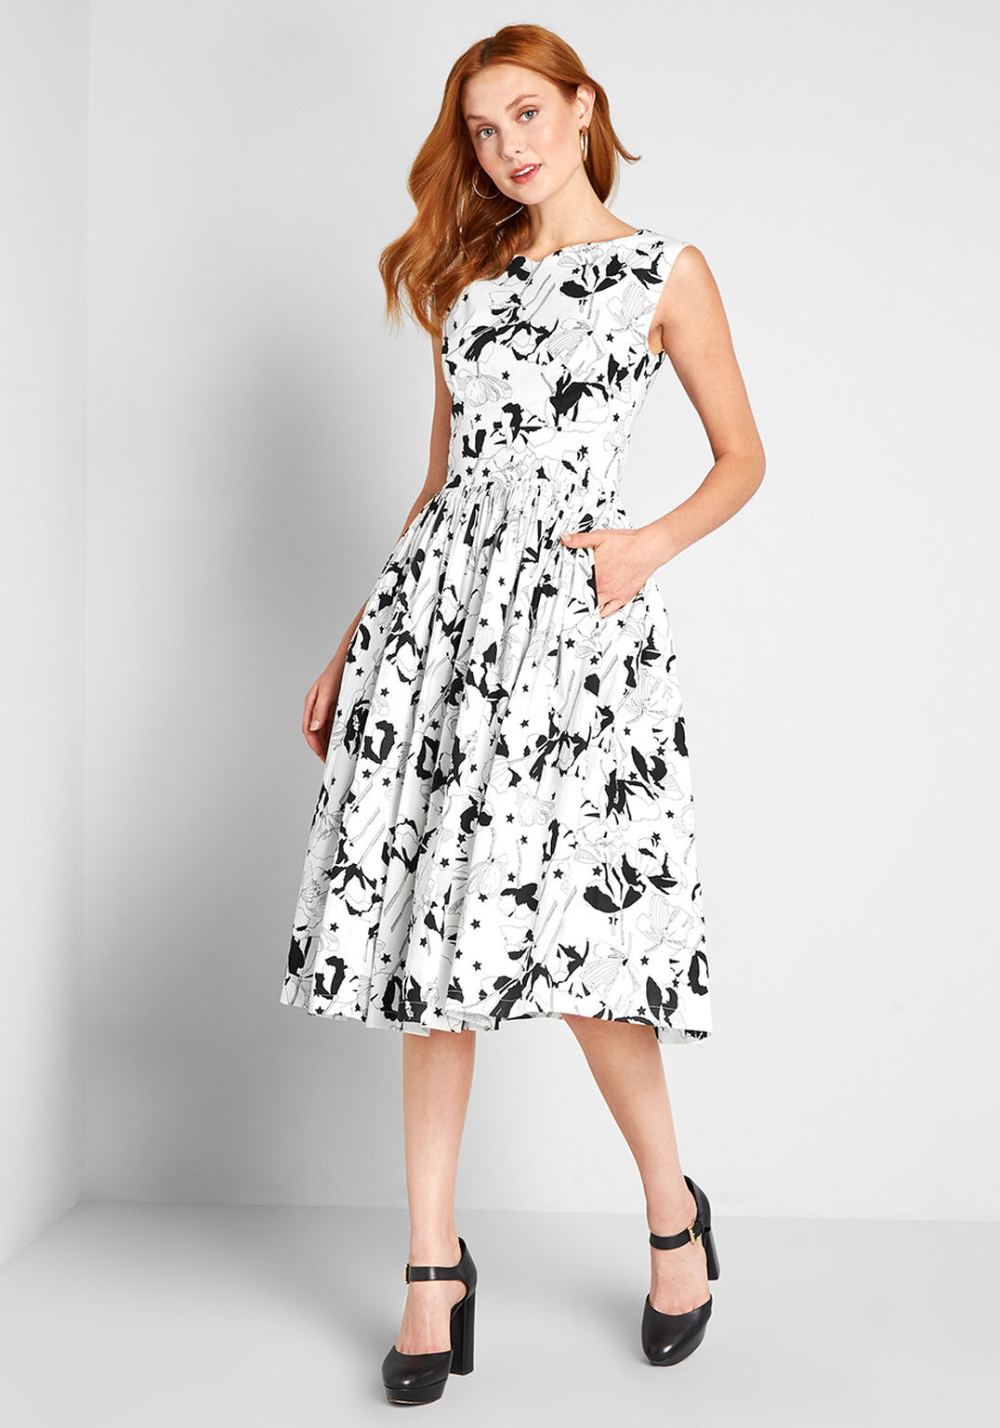 Fabulous Fit And Flare Dress Flare Dress Fit And Flare Dress Fit N Flare Dress [ 1428 x 1000 Pixel ]